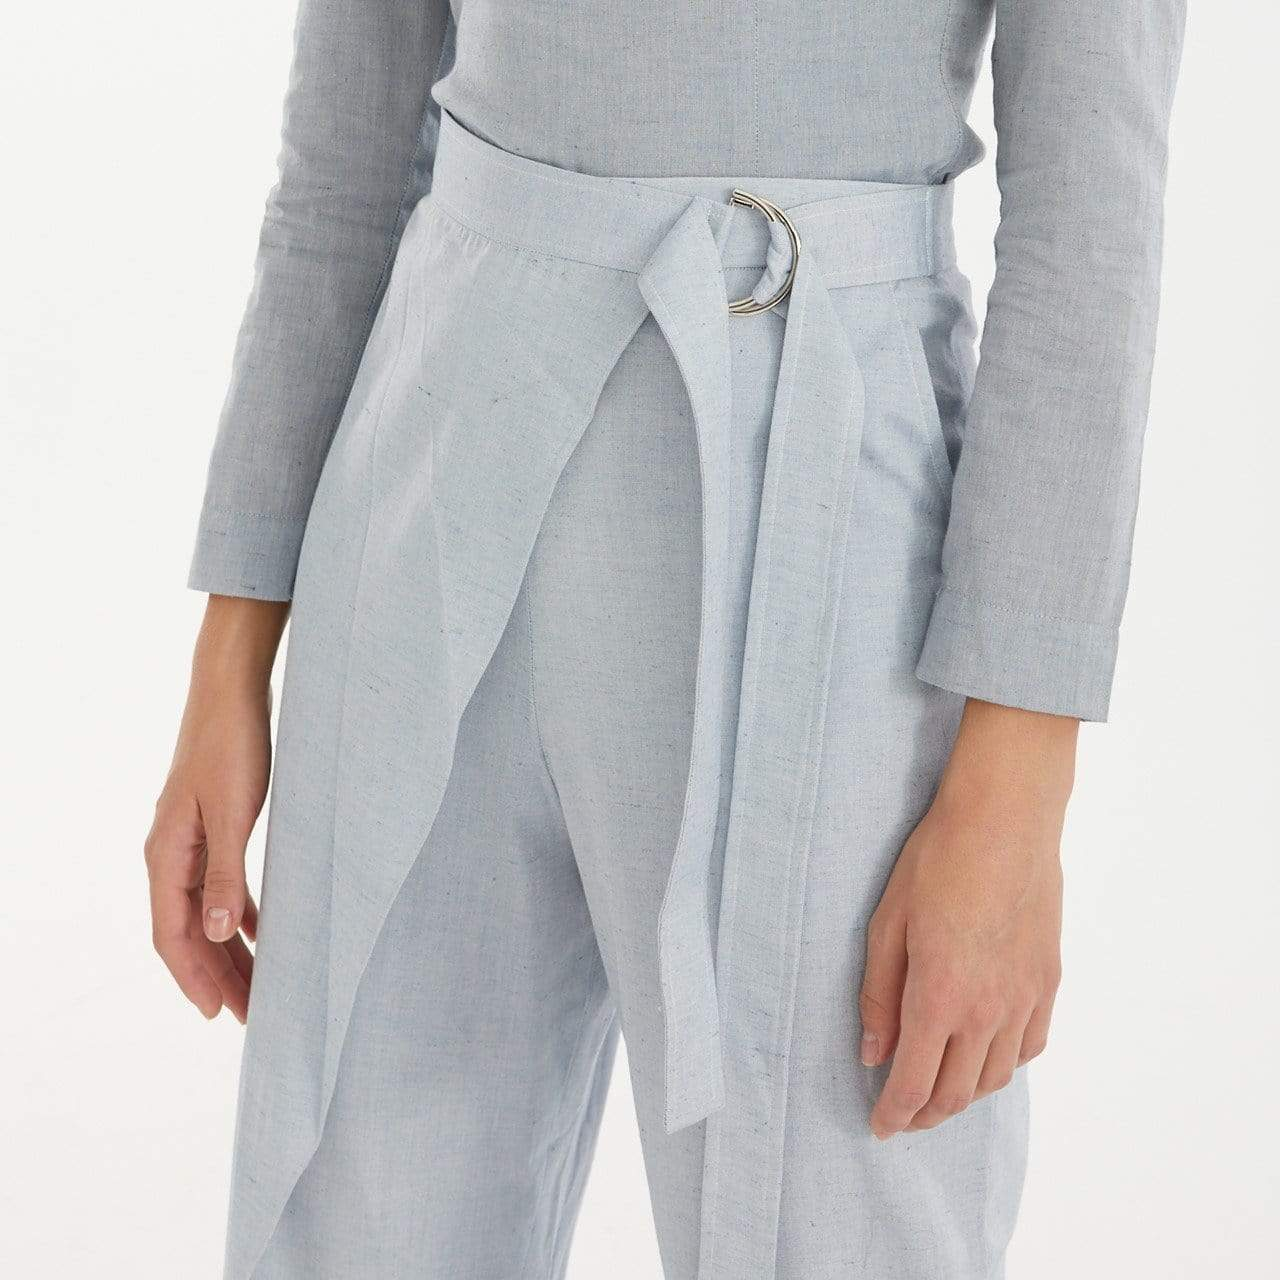 TAKTAI Pants S / Pale Blue Semi-Wraped Pants